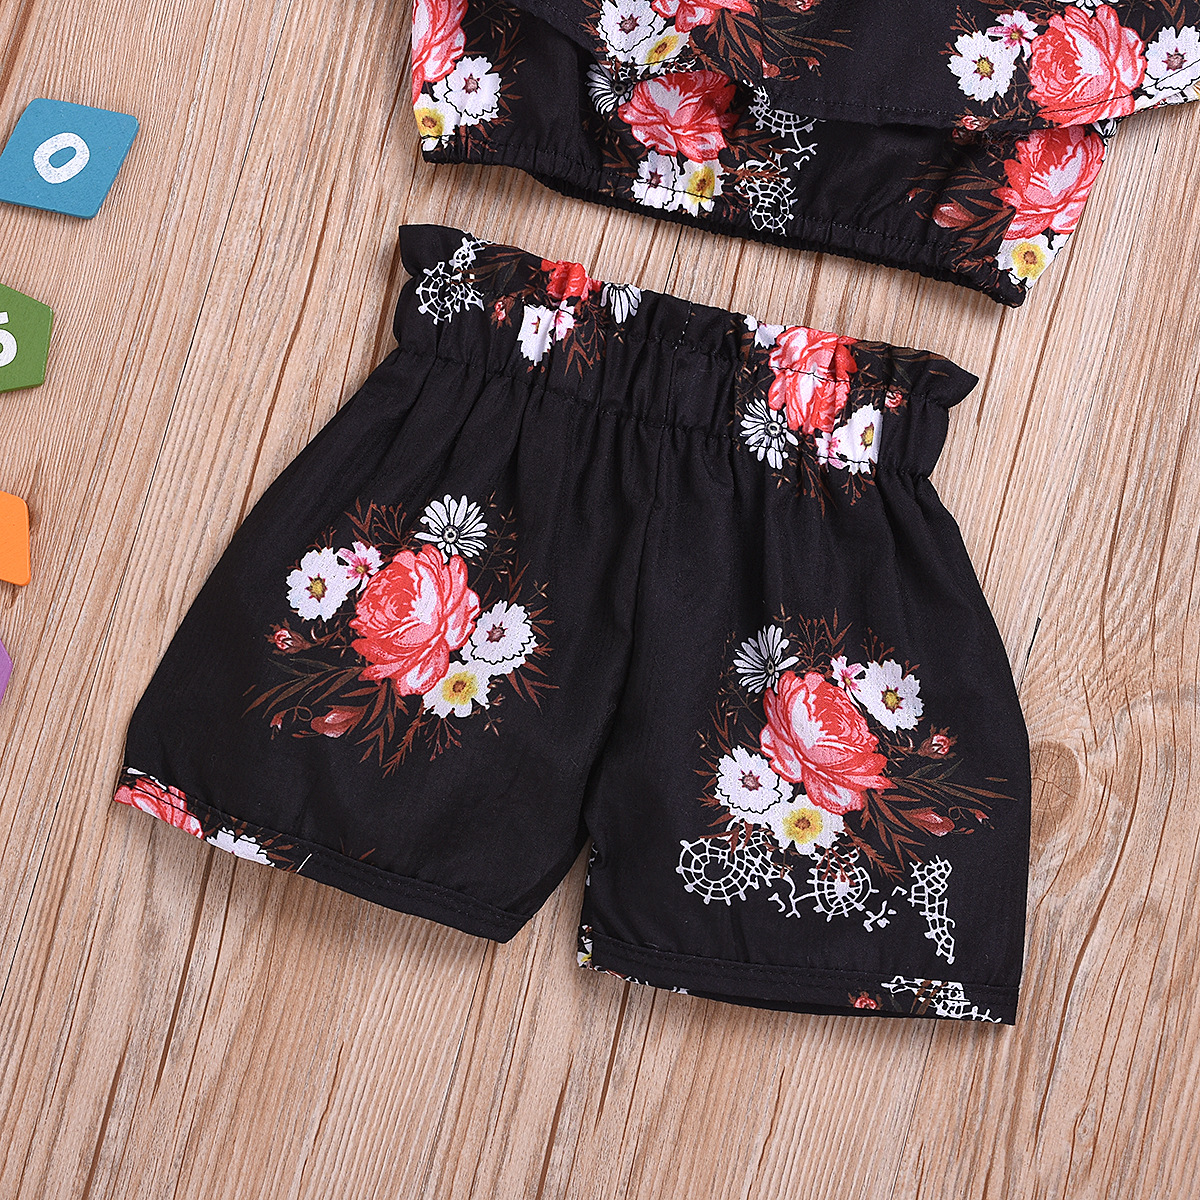 Lovely Girl Sweet Floral Print Flounce Design Black Two Piece Shorts Set